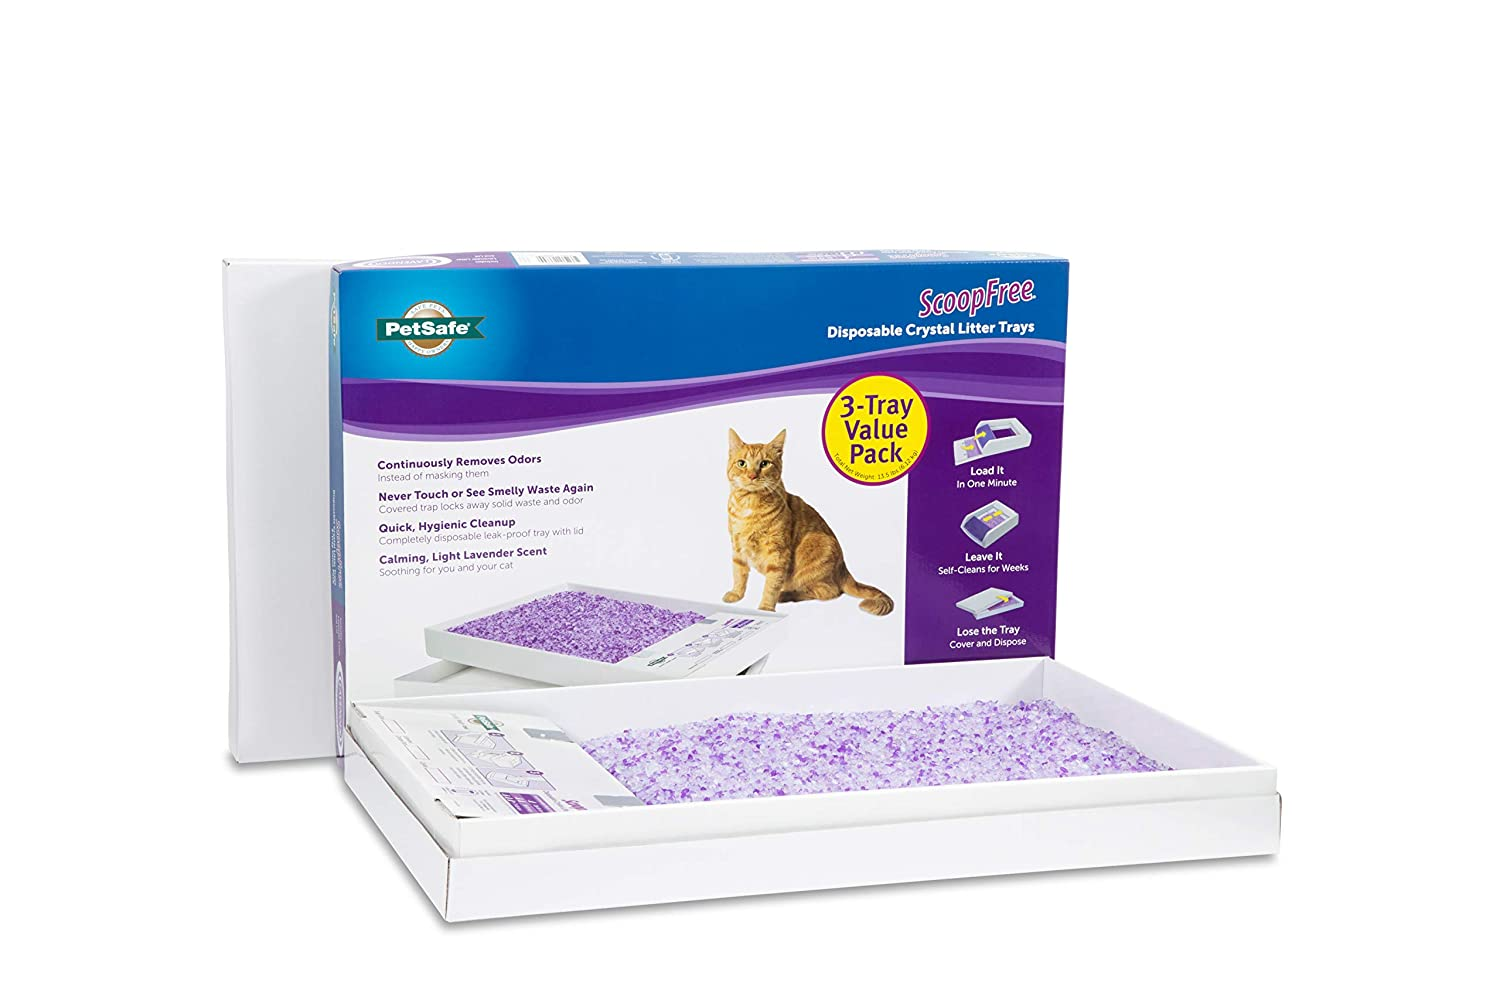 PetSafe ScoopFree Self-Cleaning Cat Litter Box Tray Refills, Non-Clumping Crystal Cat Litter, 3-Pack Waste Management PAC00-14231